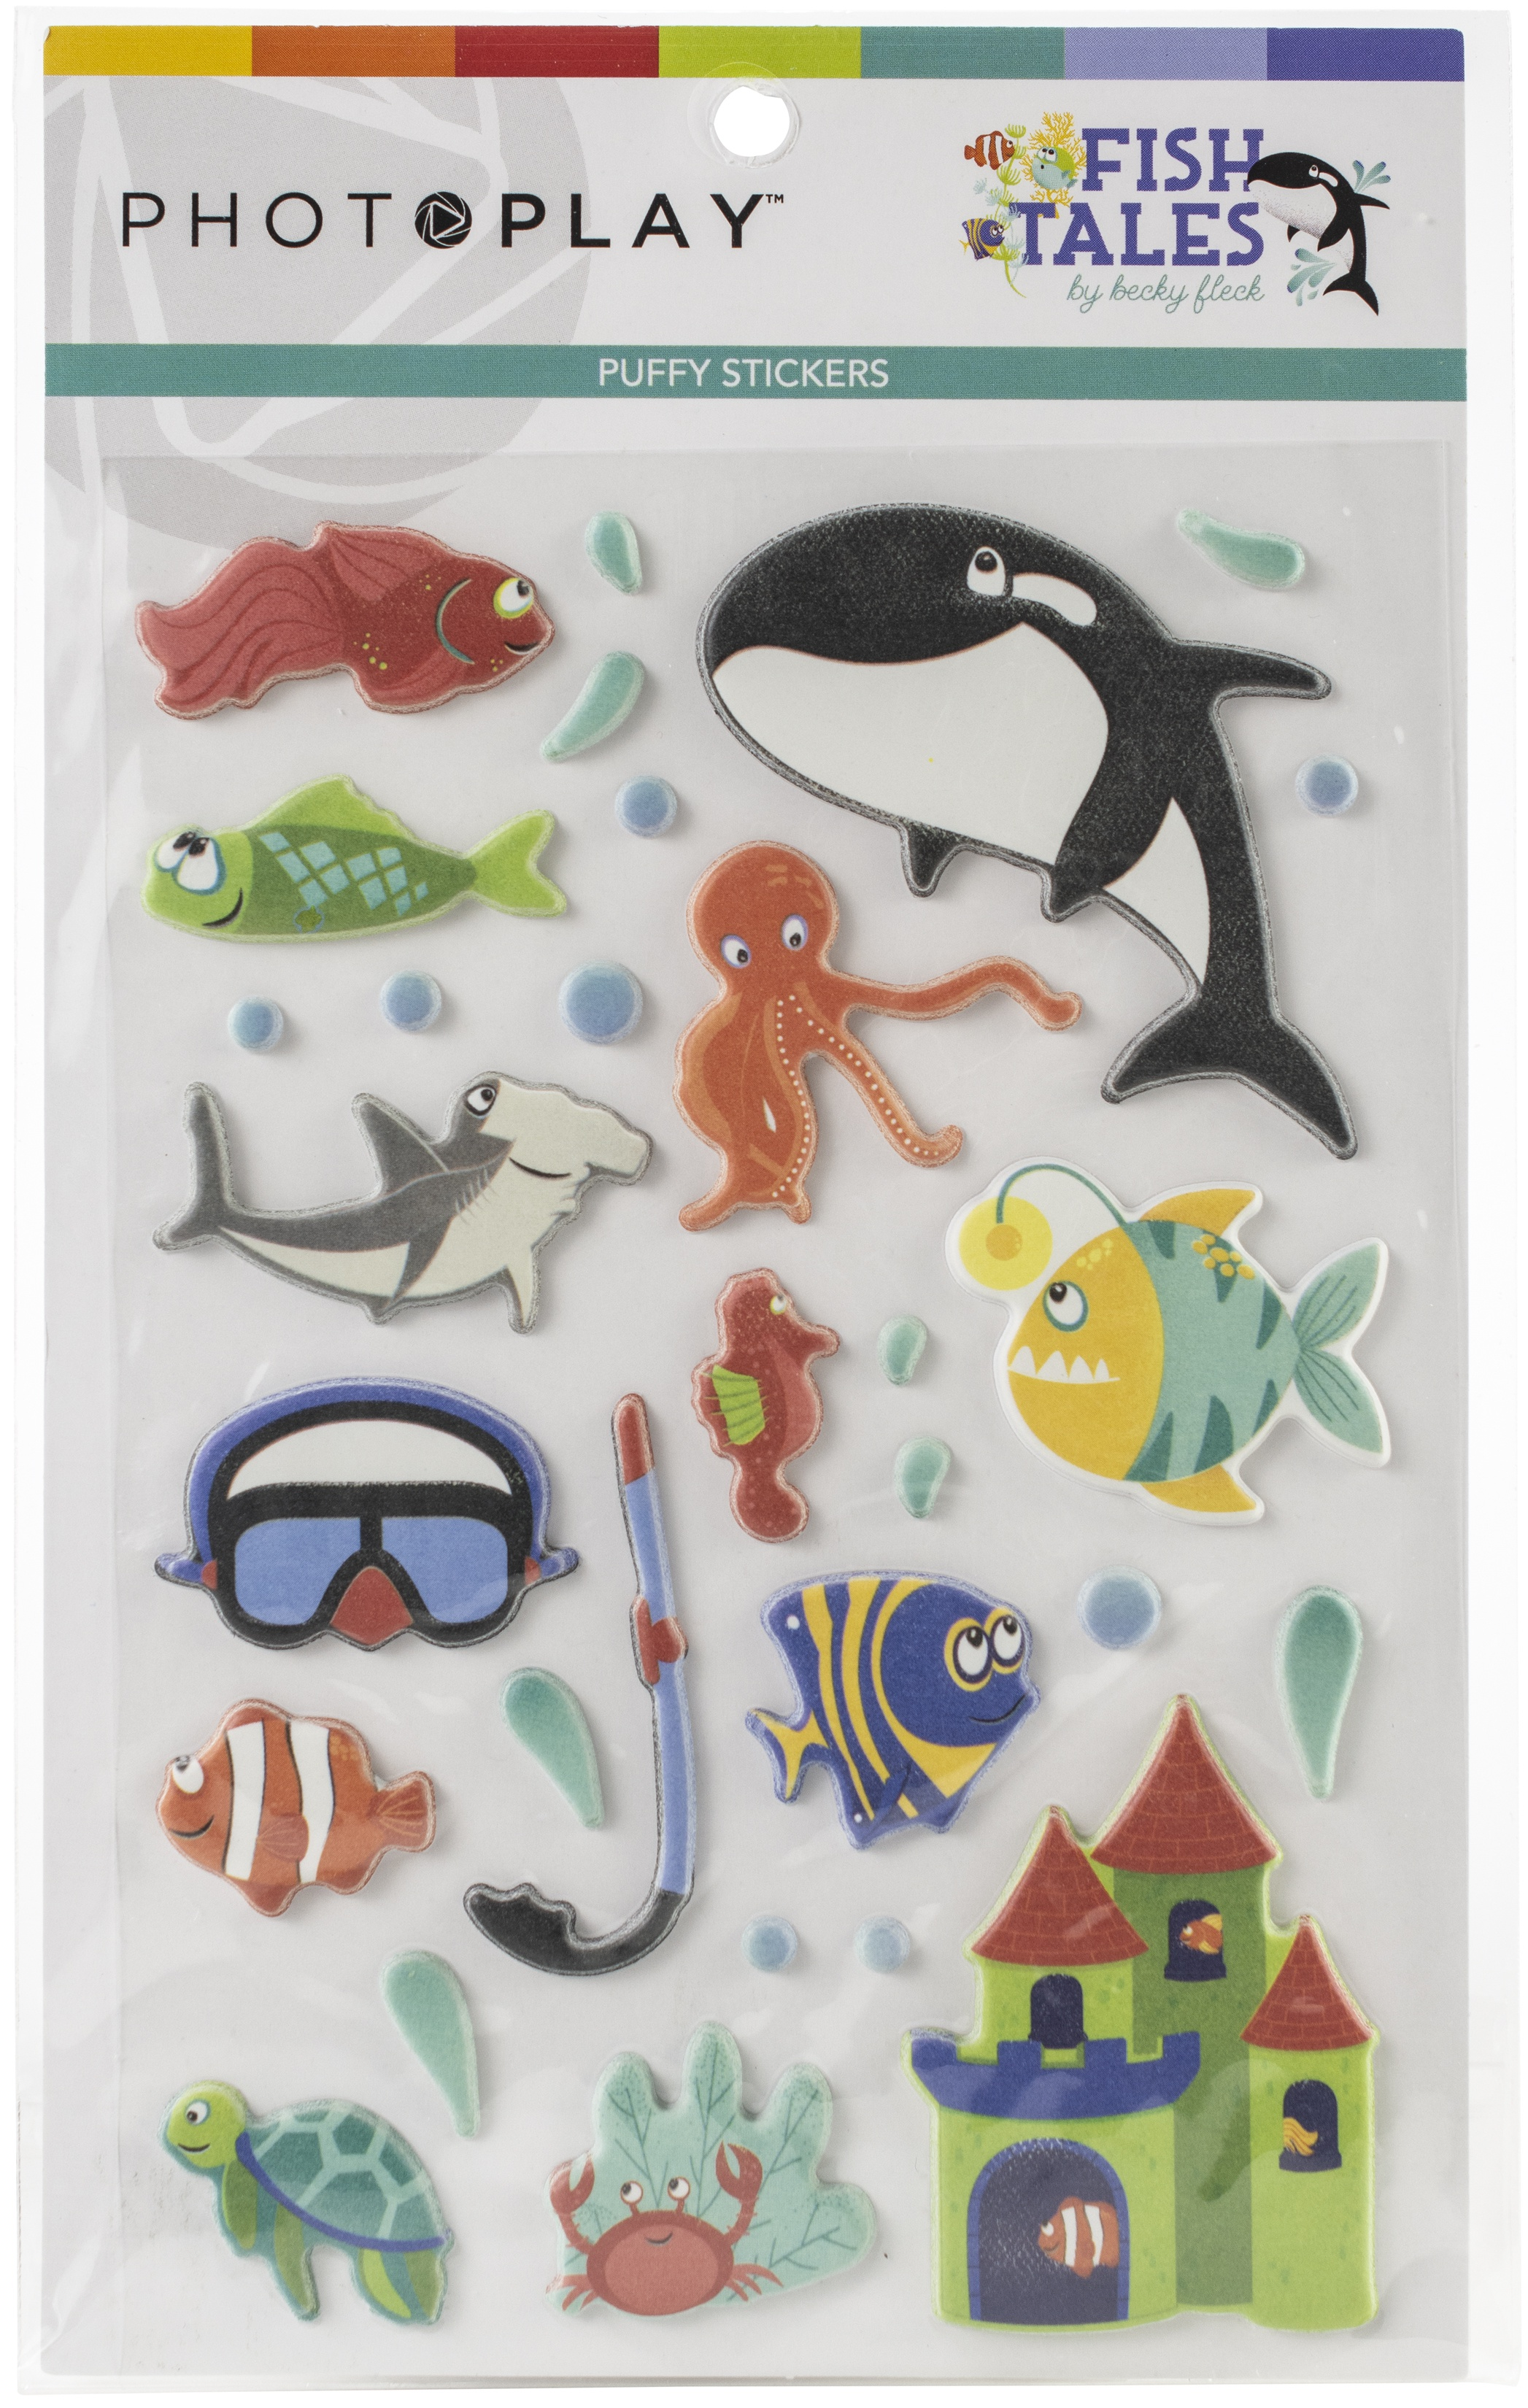 PhotoPlay - Fish Tales Collection - Puffy Stickers